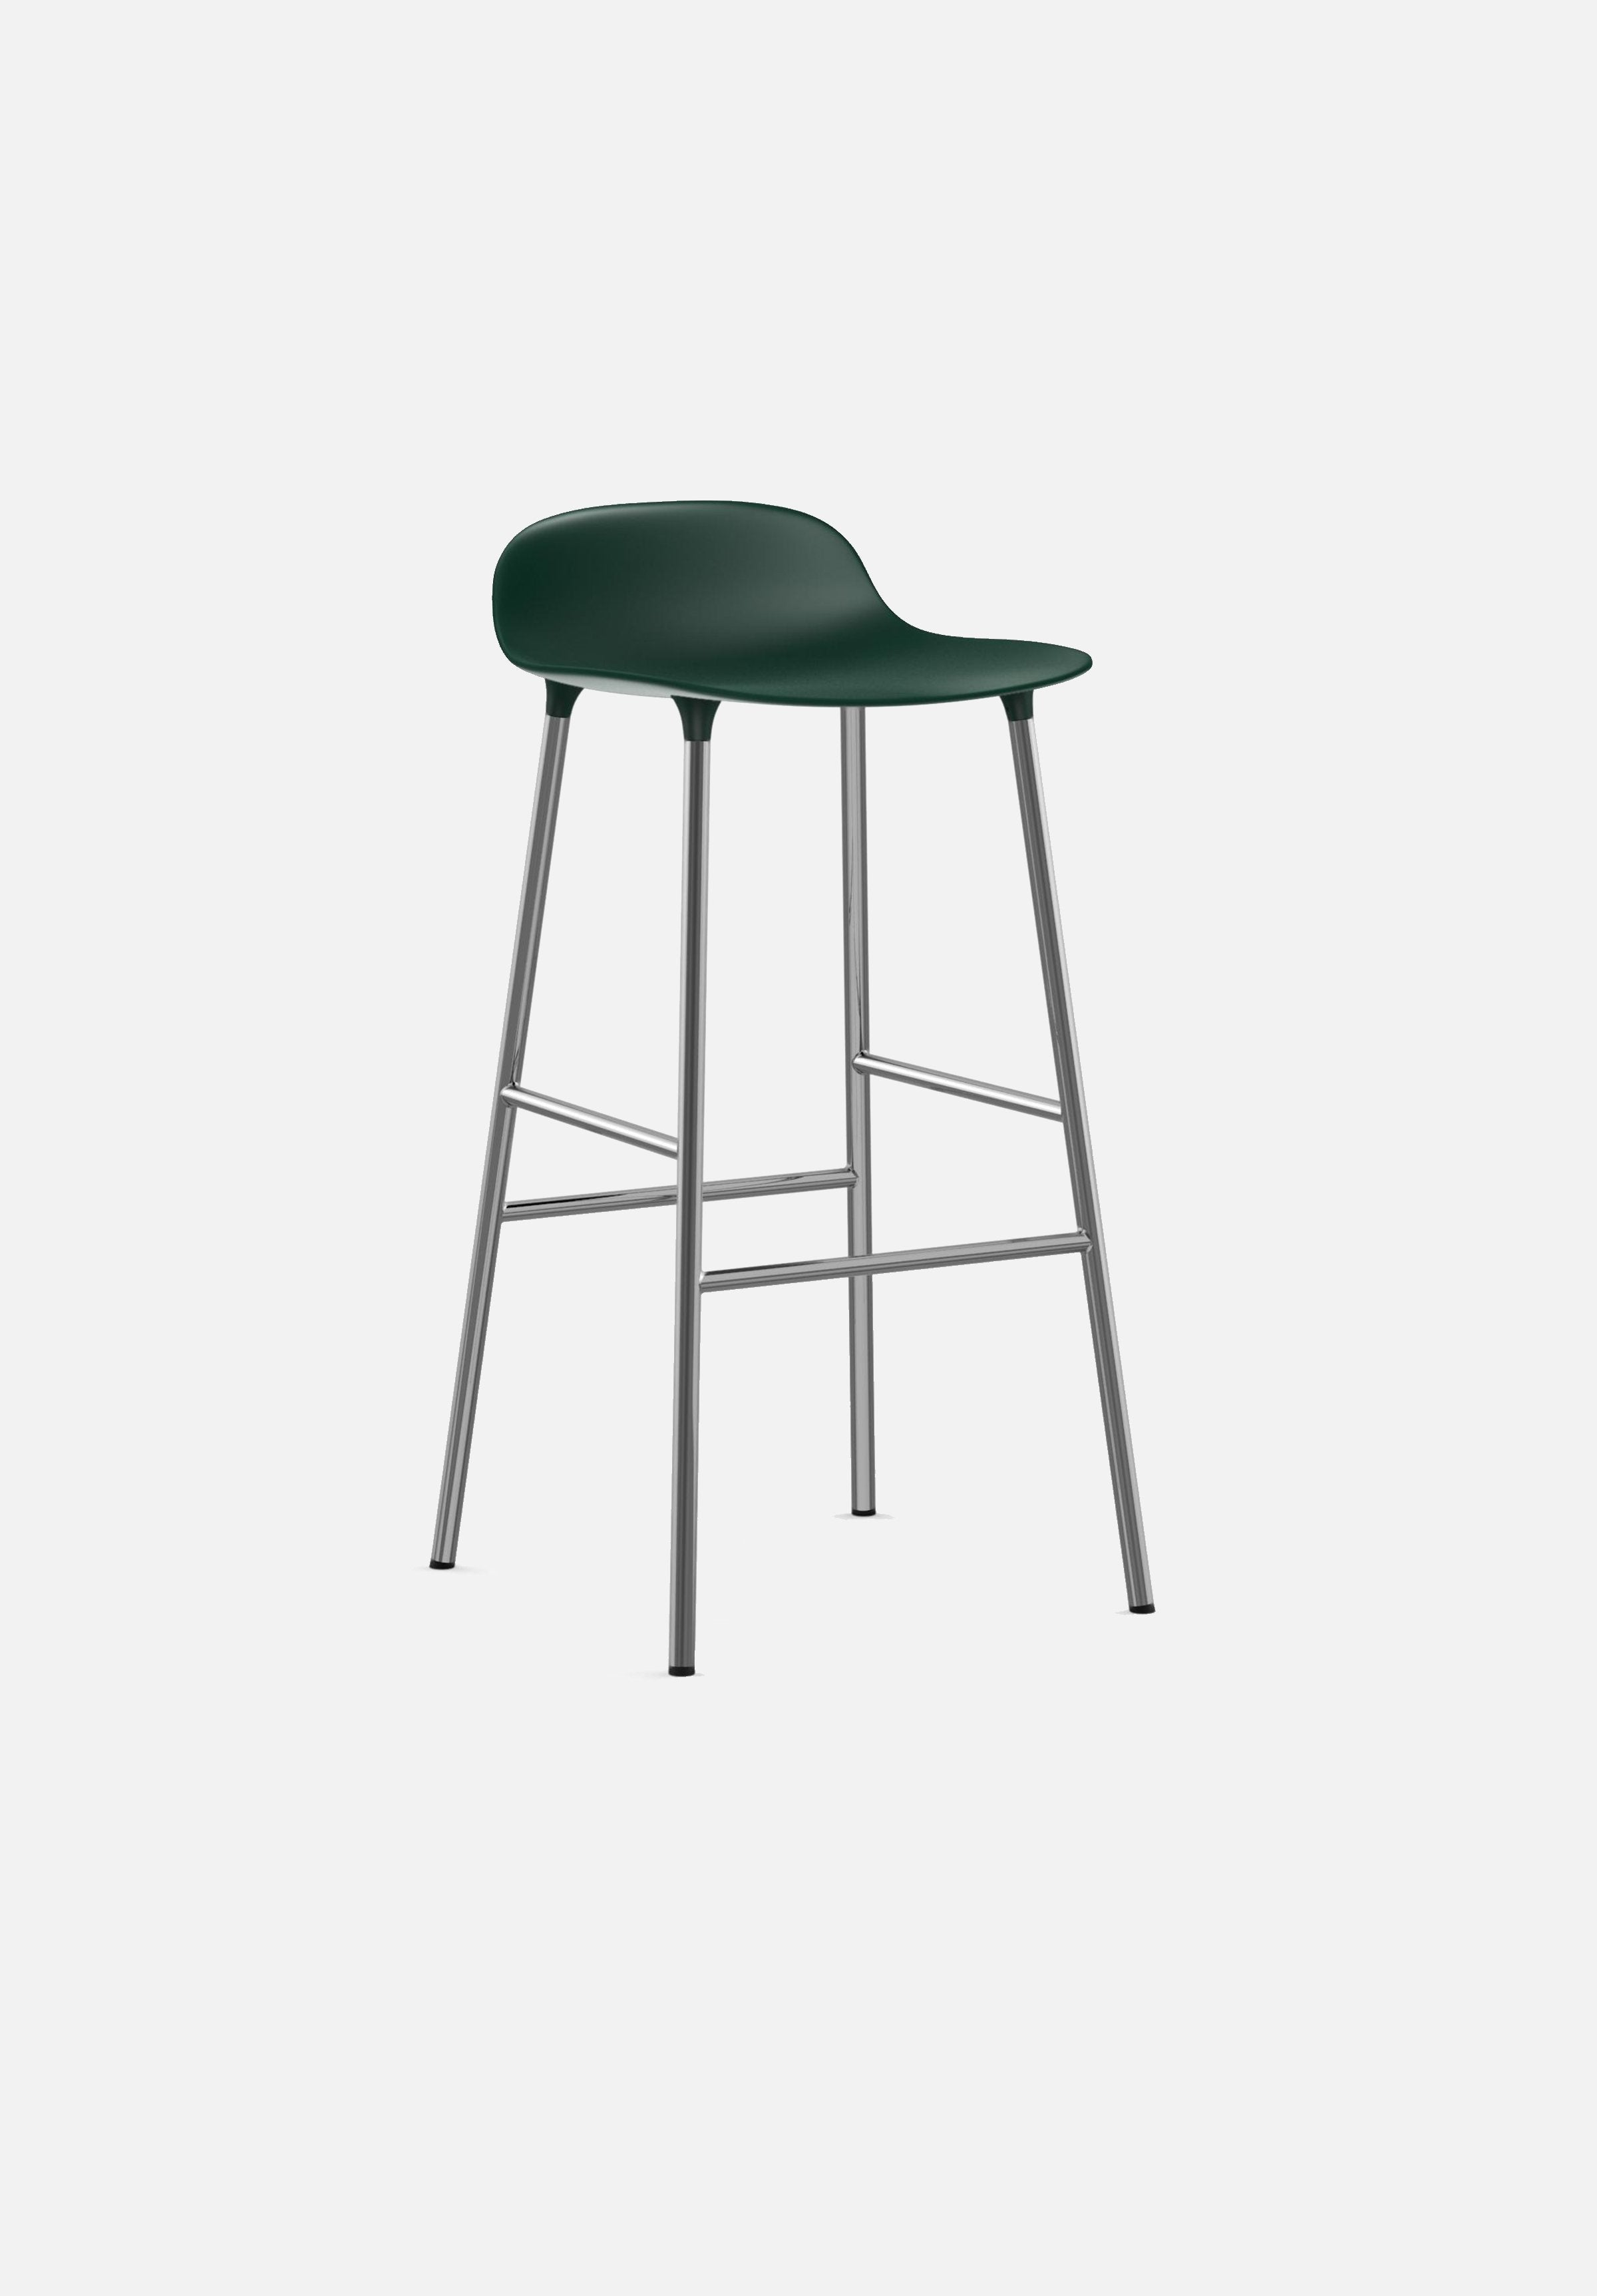 Form Stool — 75cm-Simon Legald-Normann Copenhagen-Green-Chrome-Average-canada-design-store-danish-denmark-furniture-interior